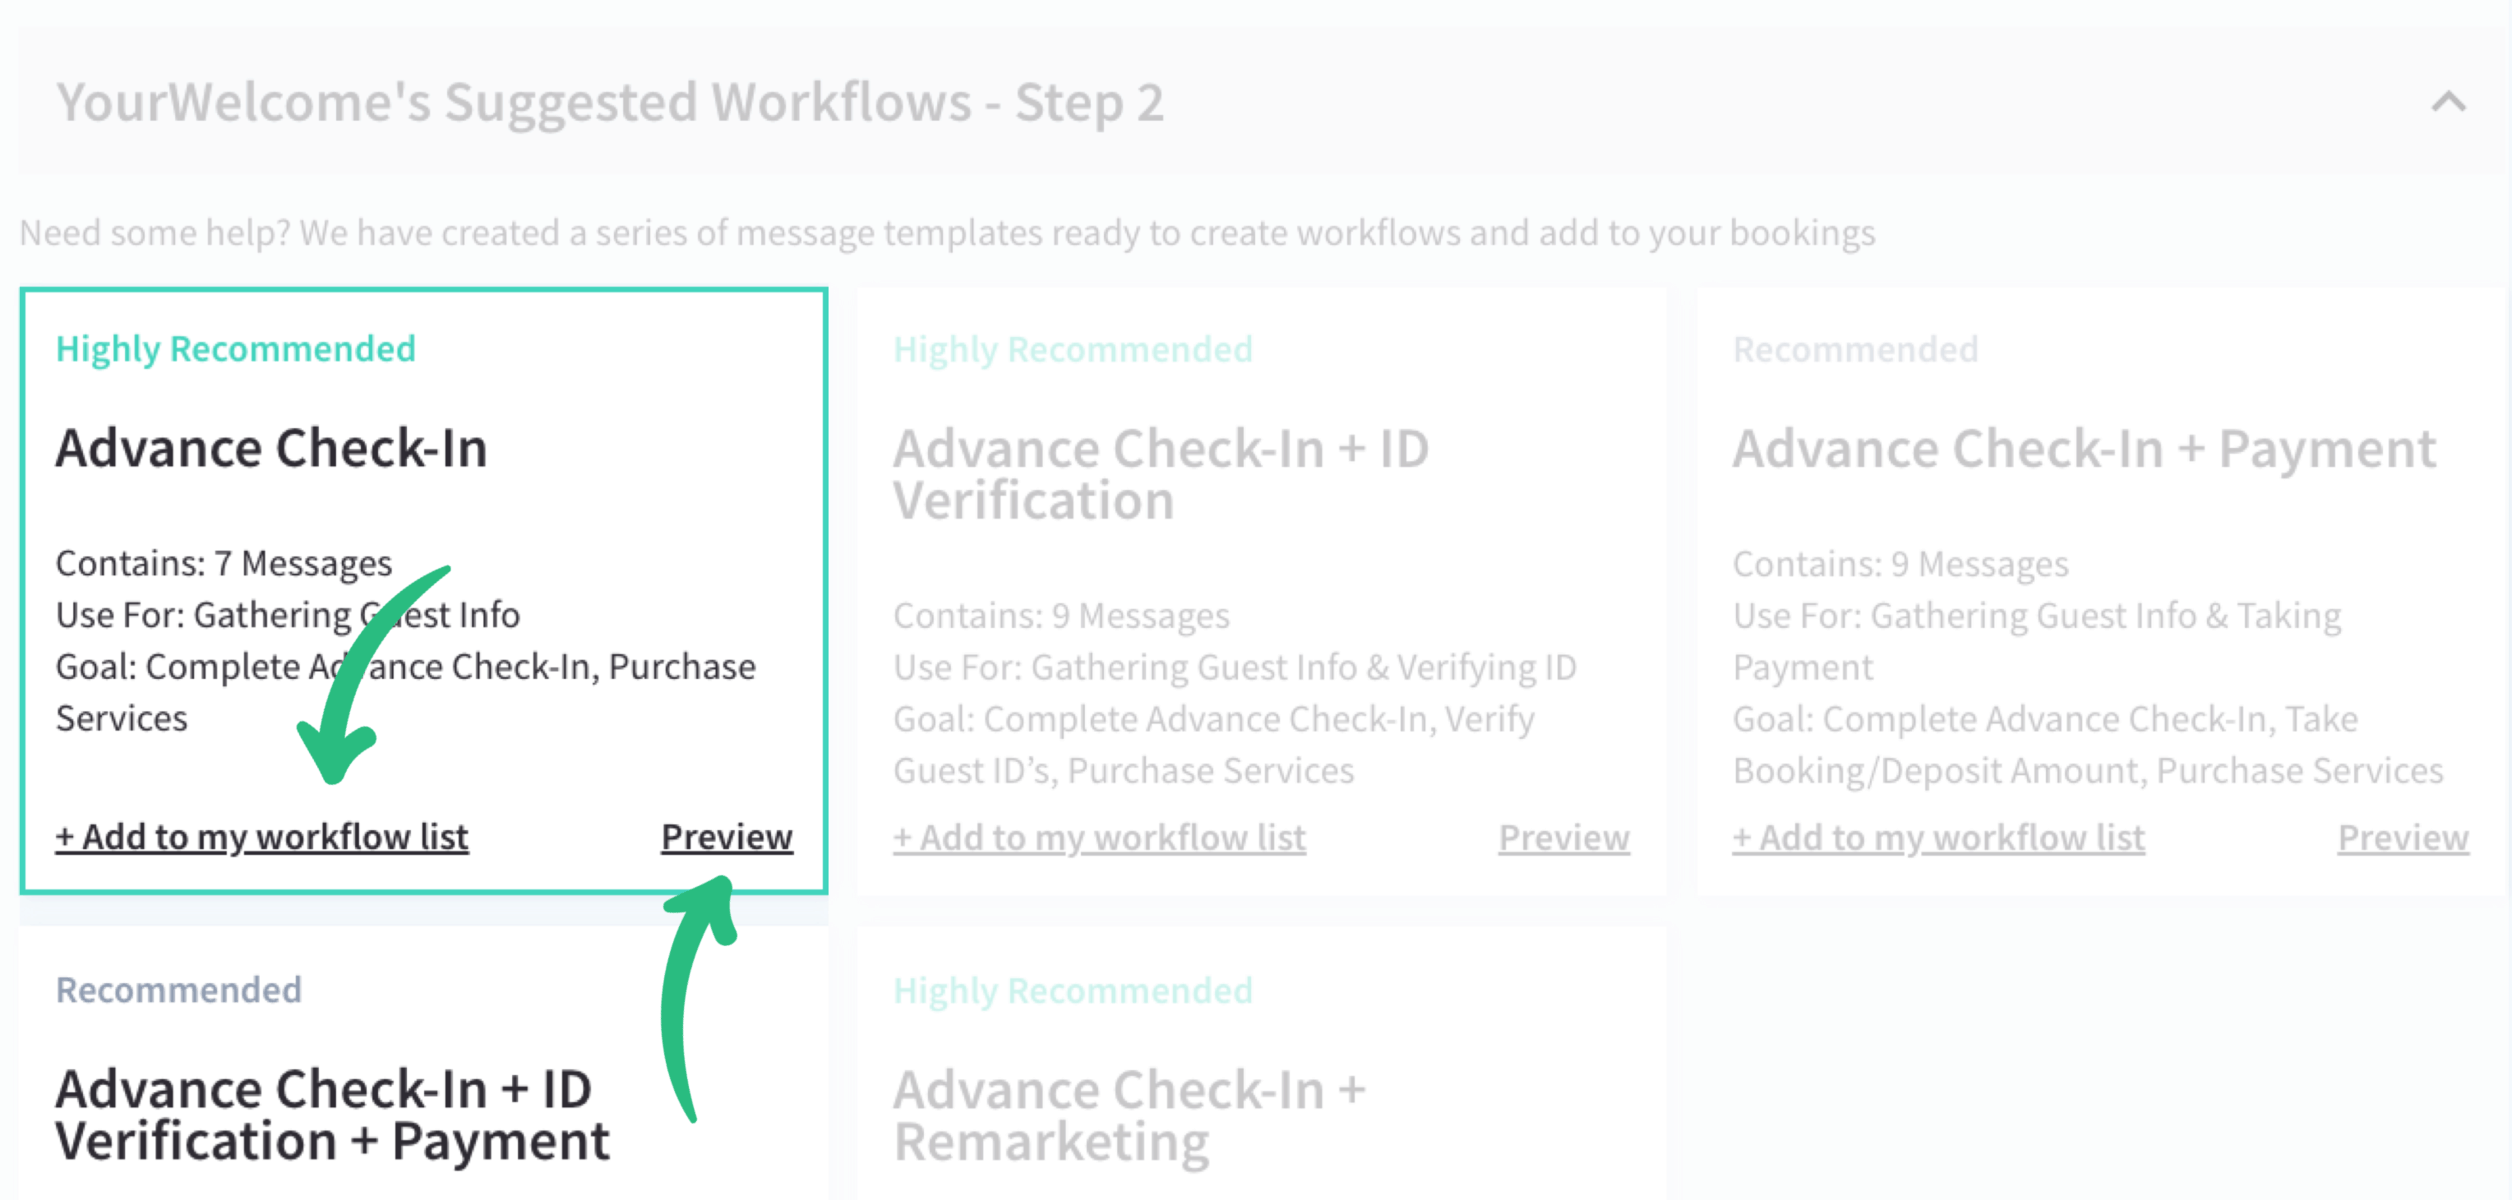 YourWelcome's Suggested Workflows